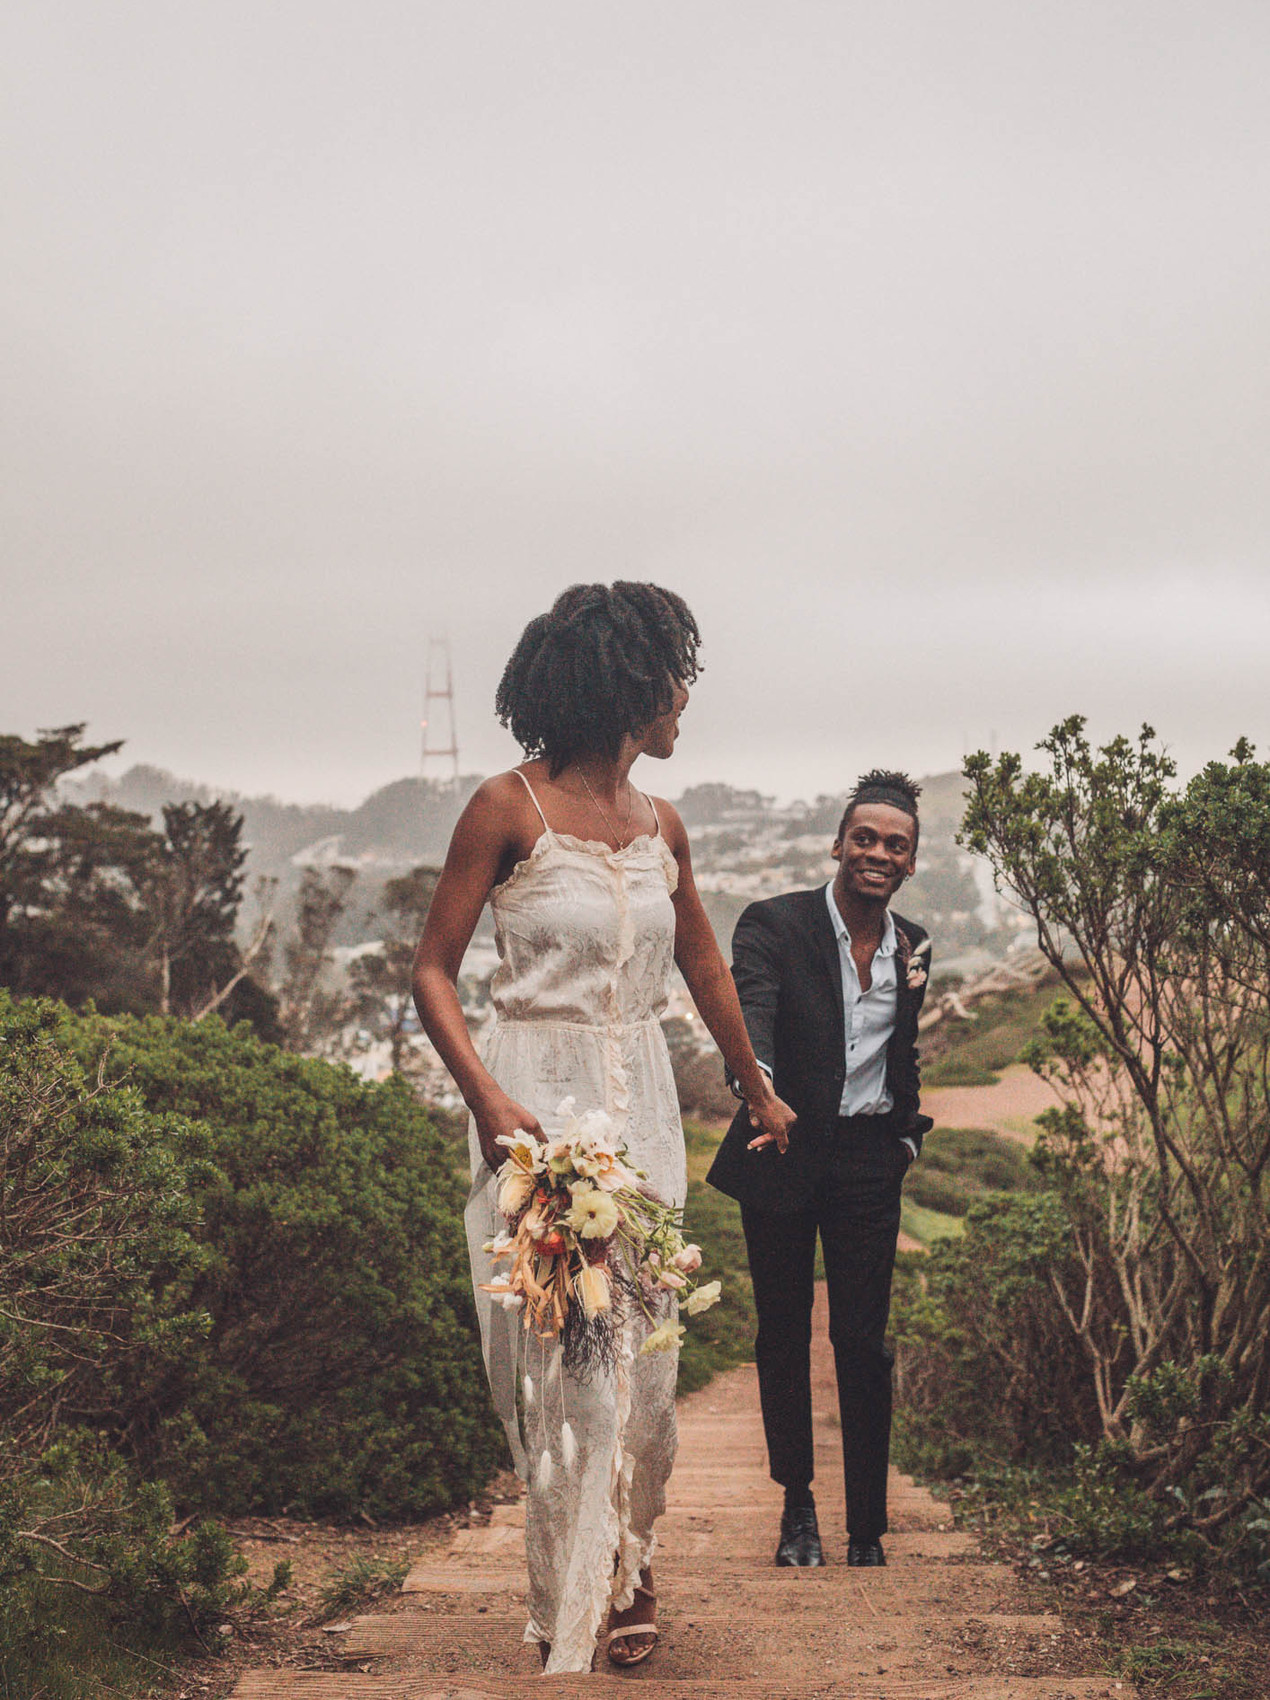 Just the Little Things Photos   Weddings   Engagements   Elopement   San Francisco   Bay Area   California